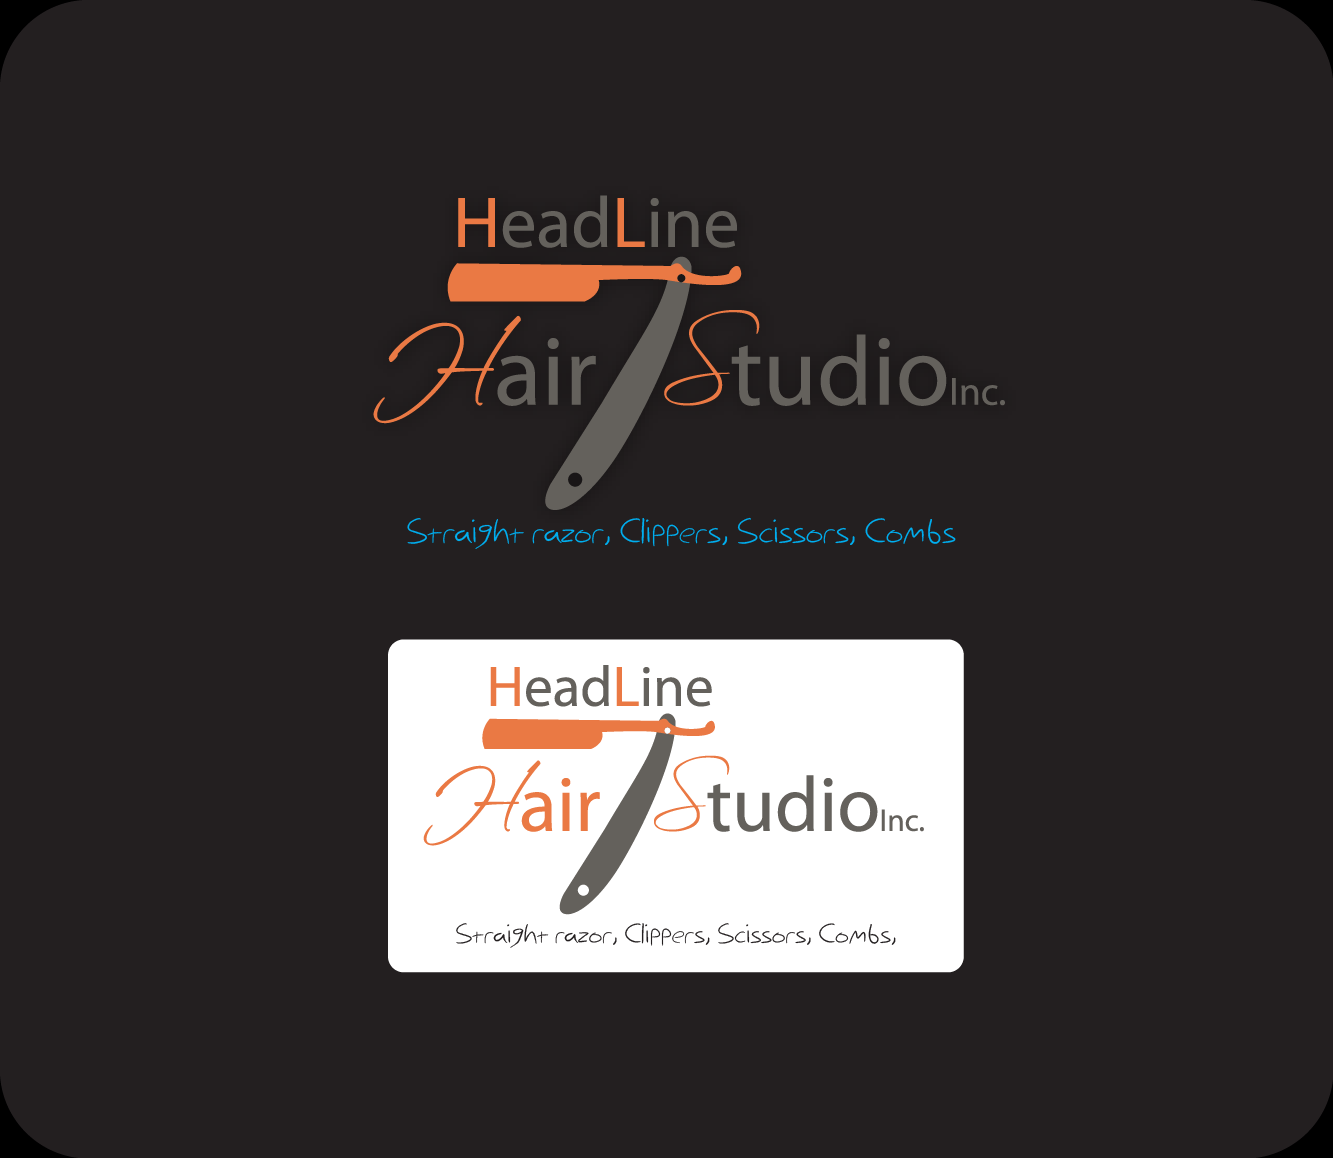 Logo Design by Md Iftekharul Islam Pavel - Entry No. 6 in the Logo Design Contest Fun Logo Design for HEADLINES HAIR STUDIO INC.